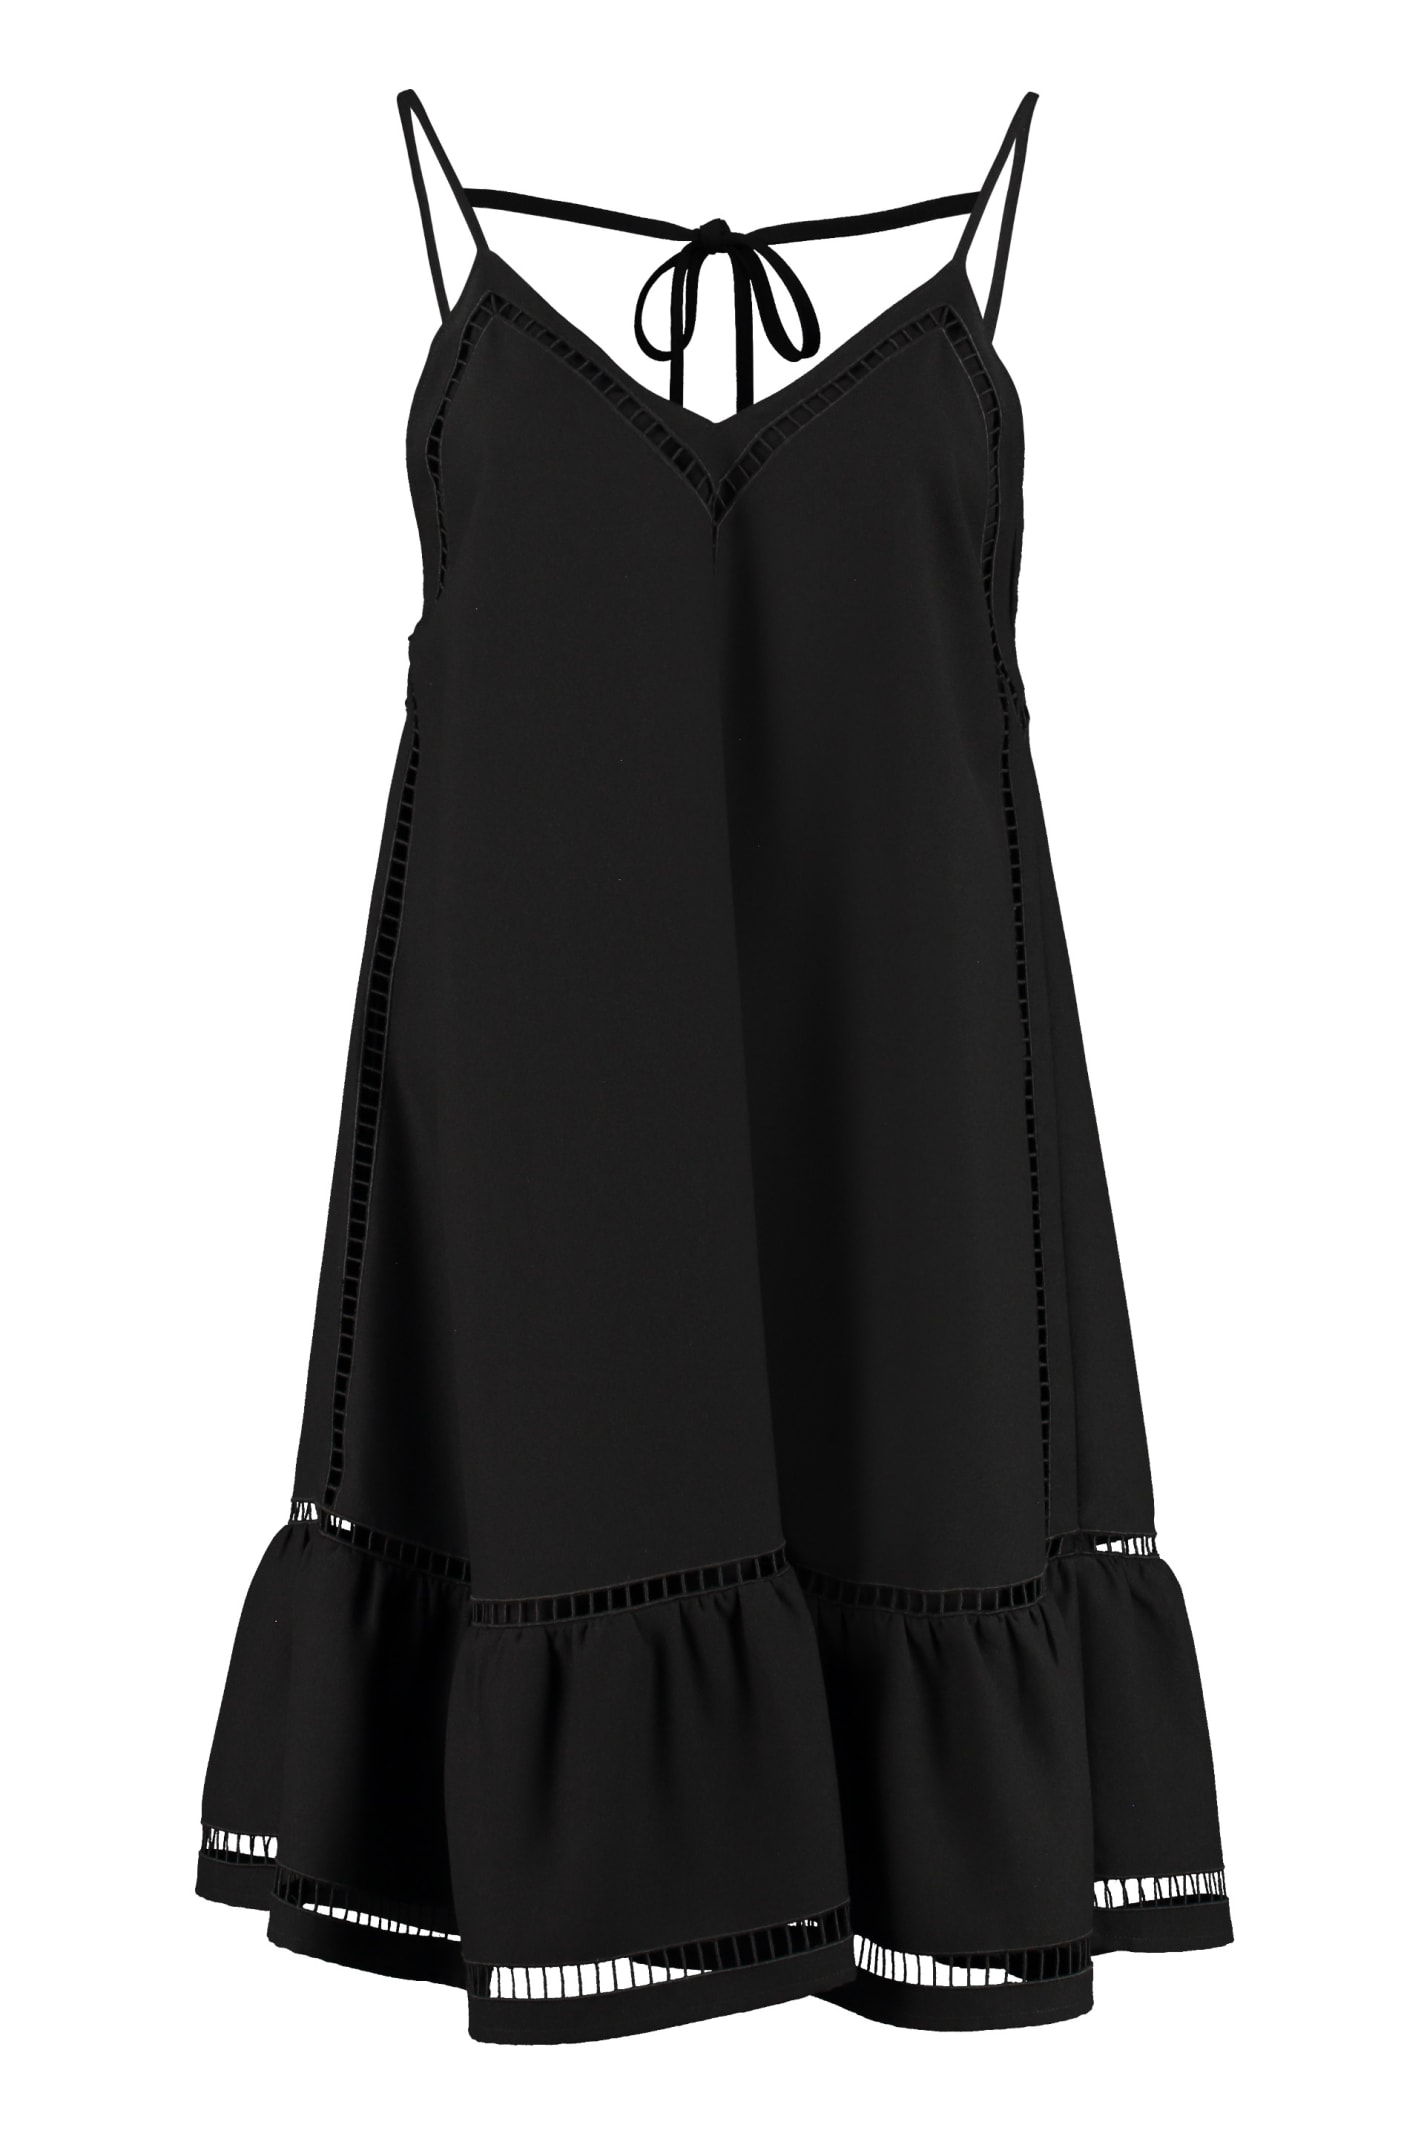 Buy RED Valentino Embroidered Mini Dress online, shop RED Valentino with free shipping